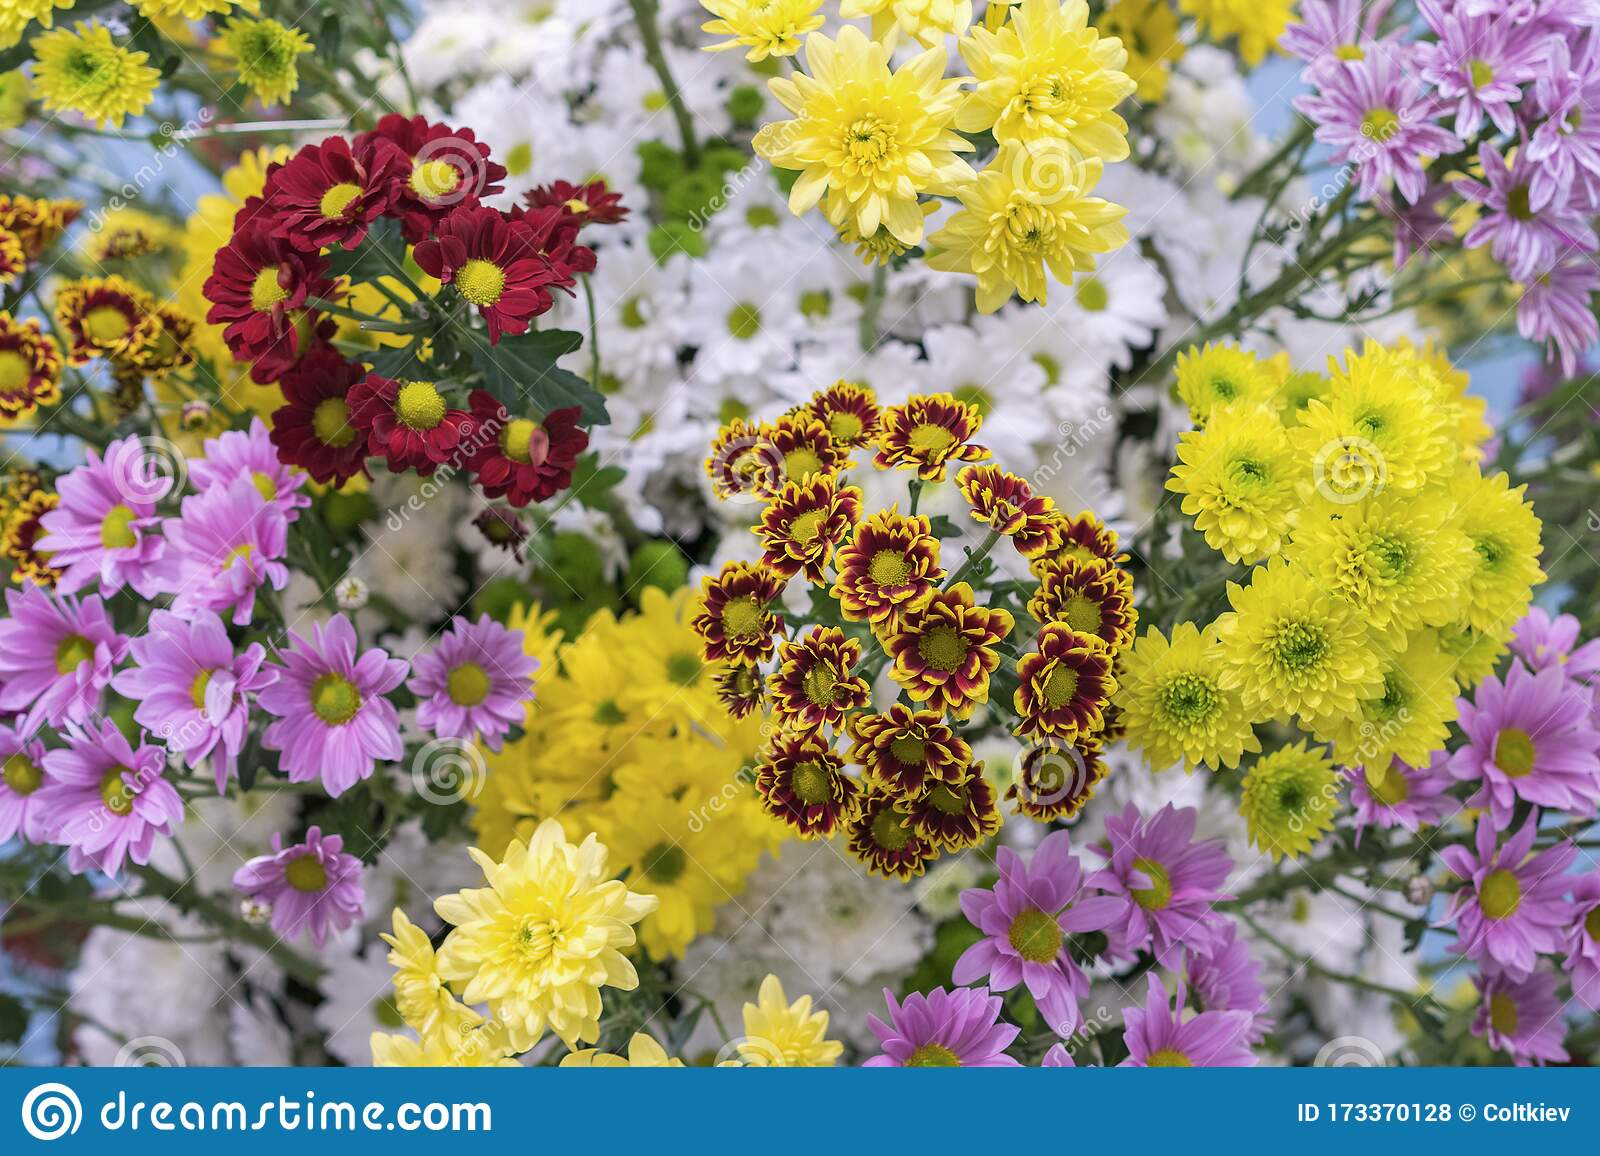 Chrysanthemum Flowers Texture And Background Spring Flowers Of